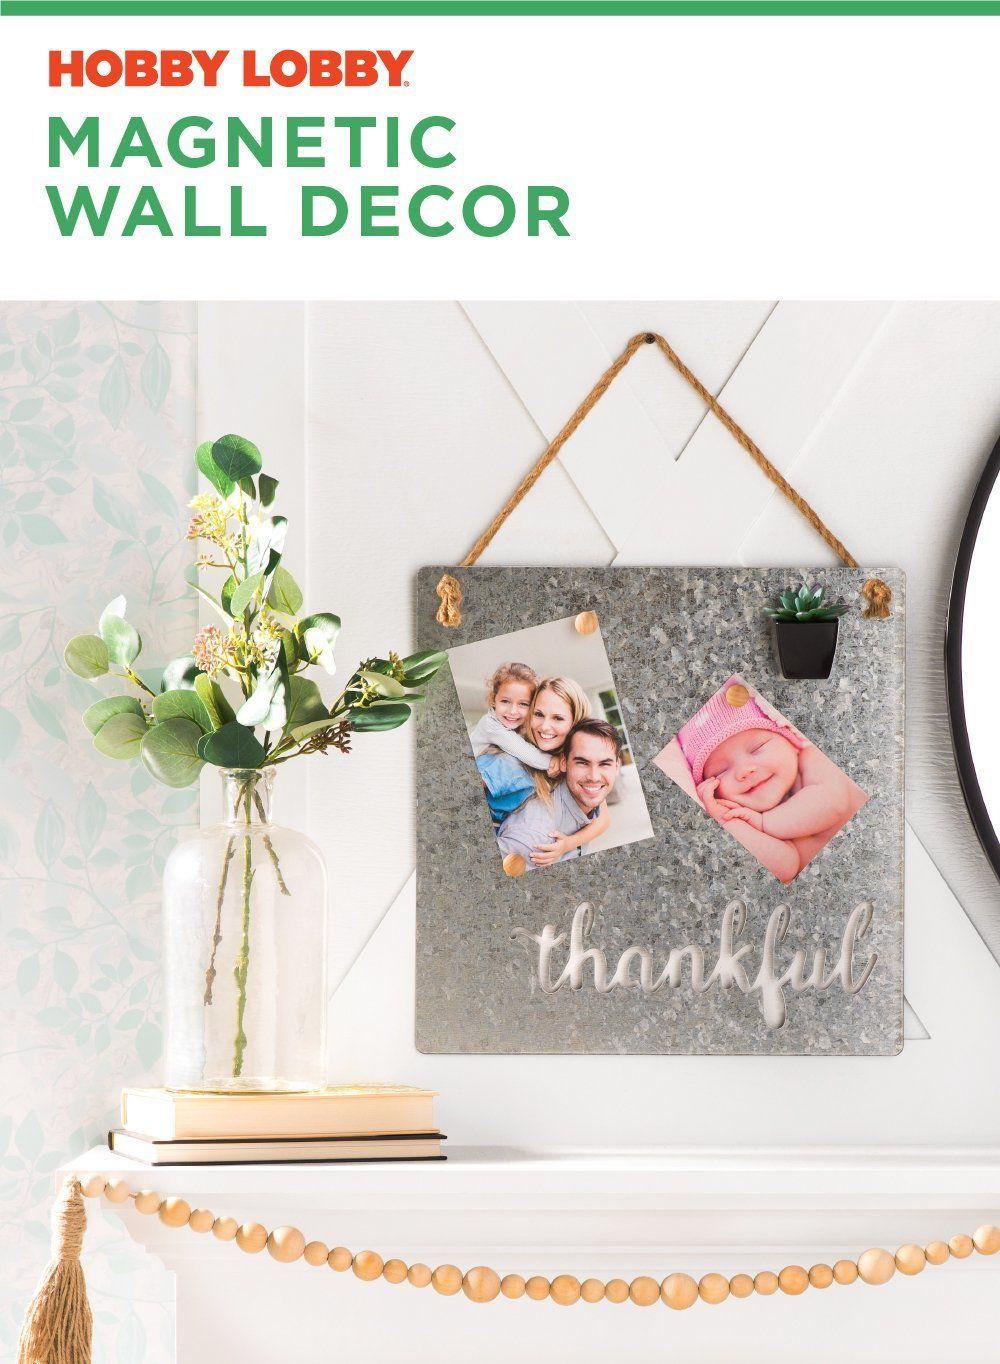 Personalize This Galvanized Magnetic Wall Decor With Pictures Of The Ones You Love Whatyoumakeit Wall Decor Pictures Mirror Wall Art Wall Decor